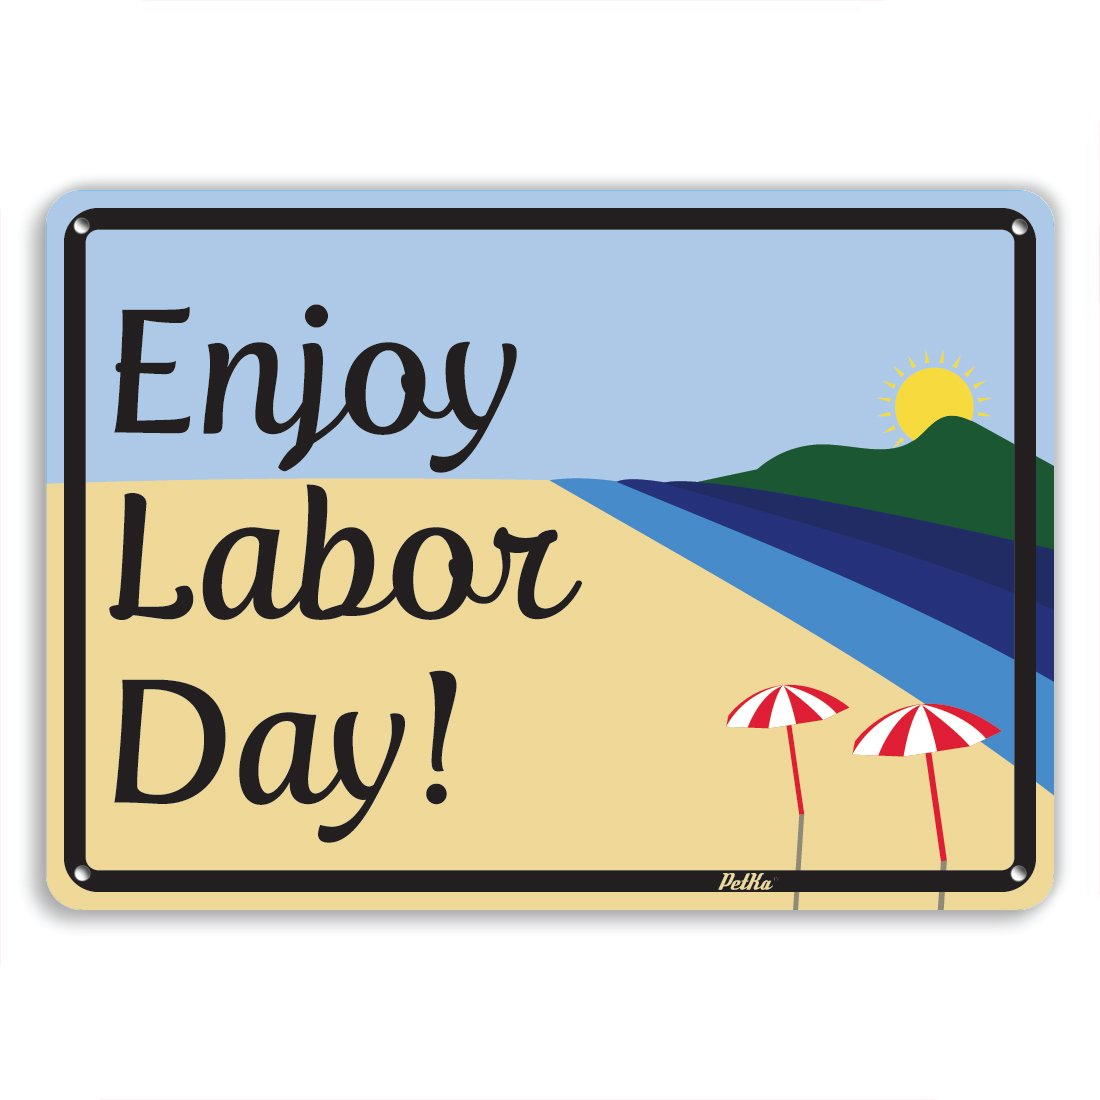 PetKa Signs and Graphics PKLD-0003-NA_10x7''Enjoy Labor Day'' Aluminum Sign, 10'' x 7'', Black on Beach